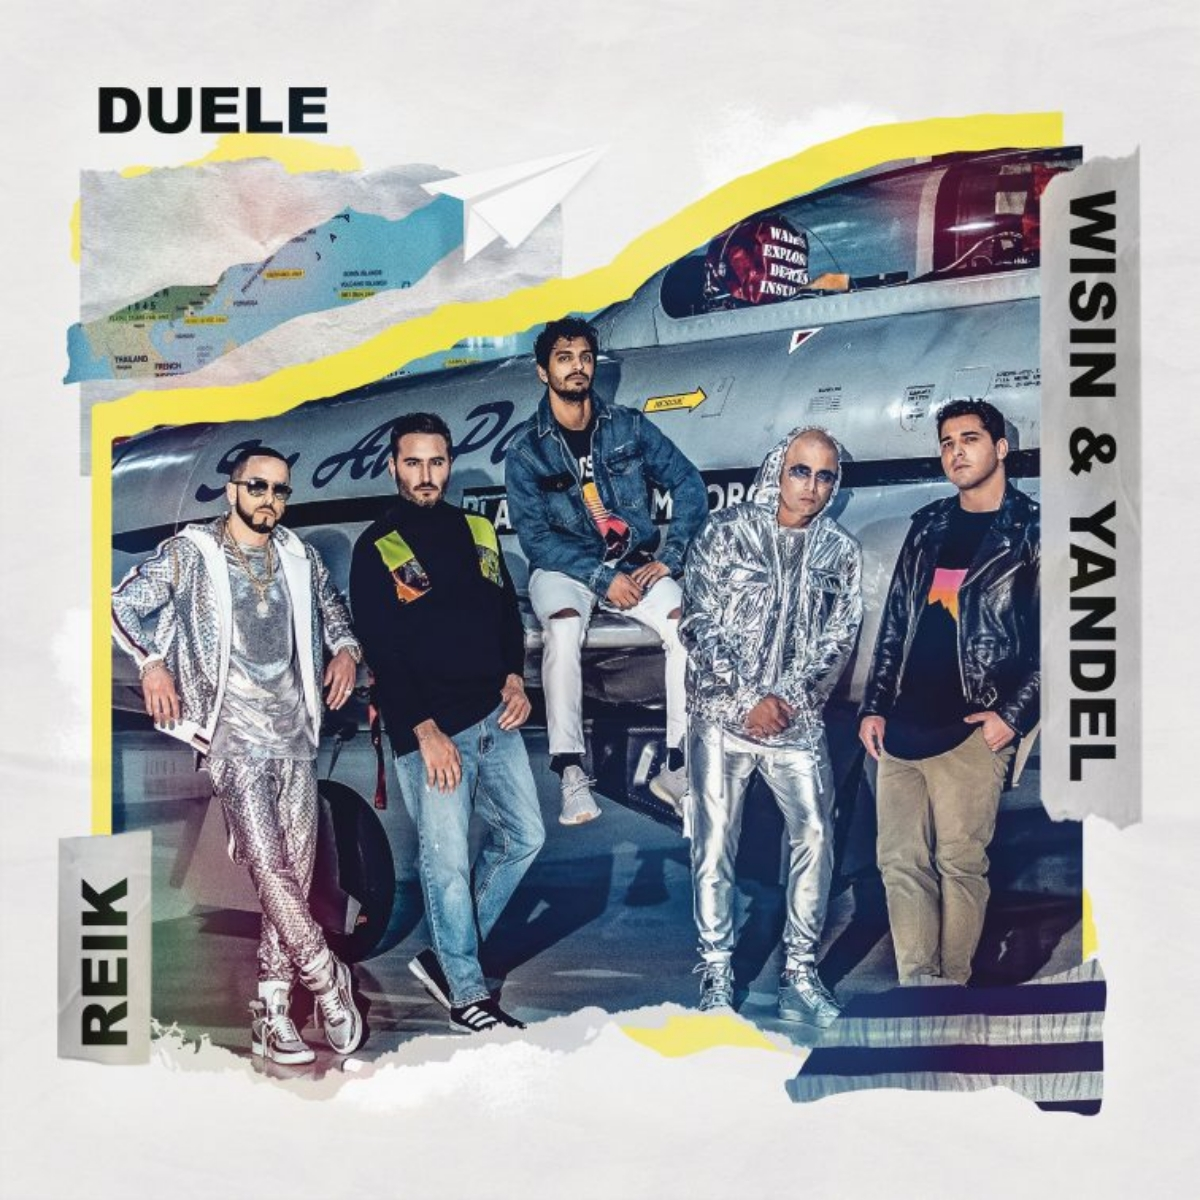 Reik Ft Wisin y Yandel – Duele.mp3